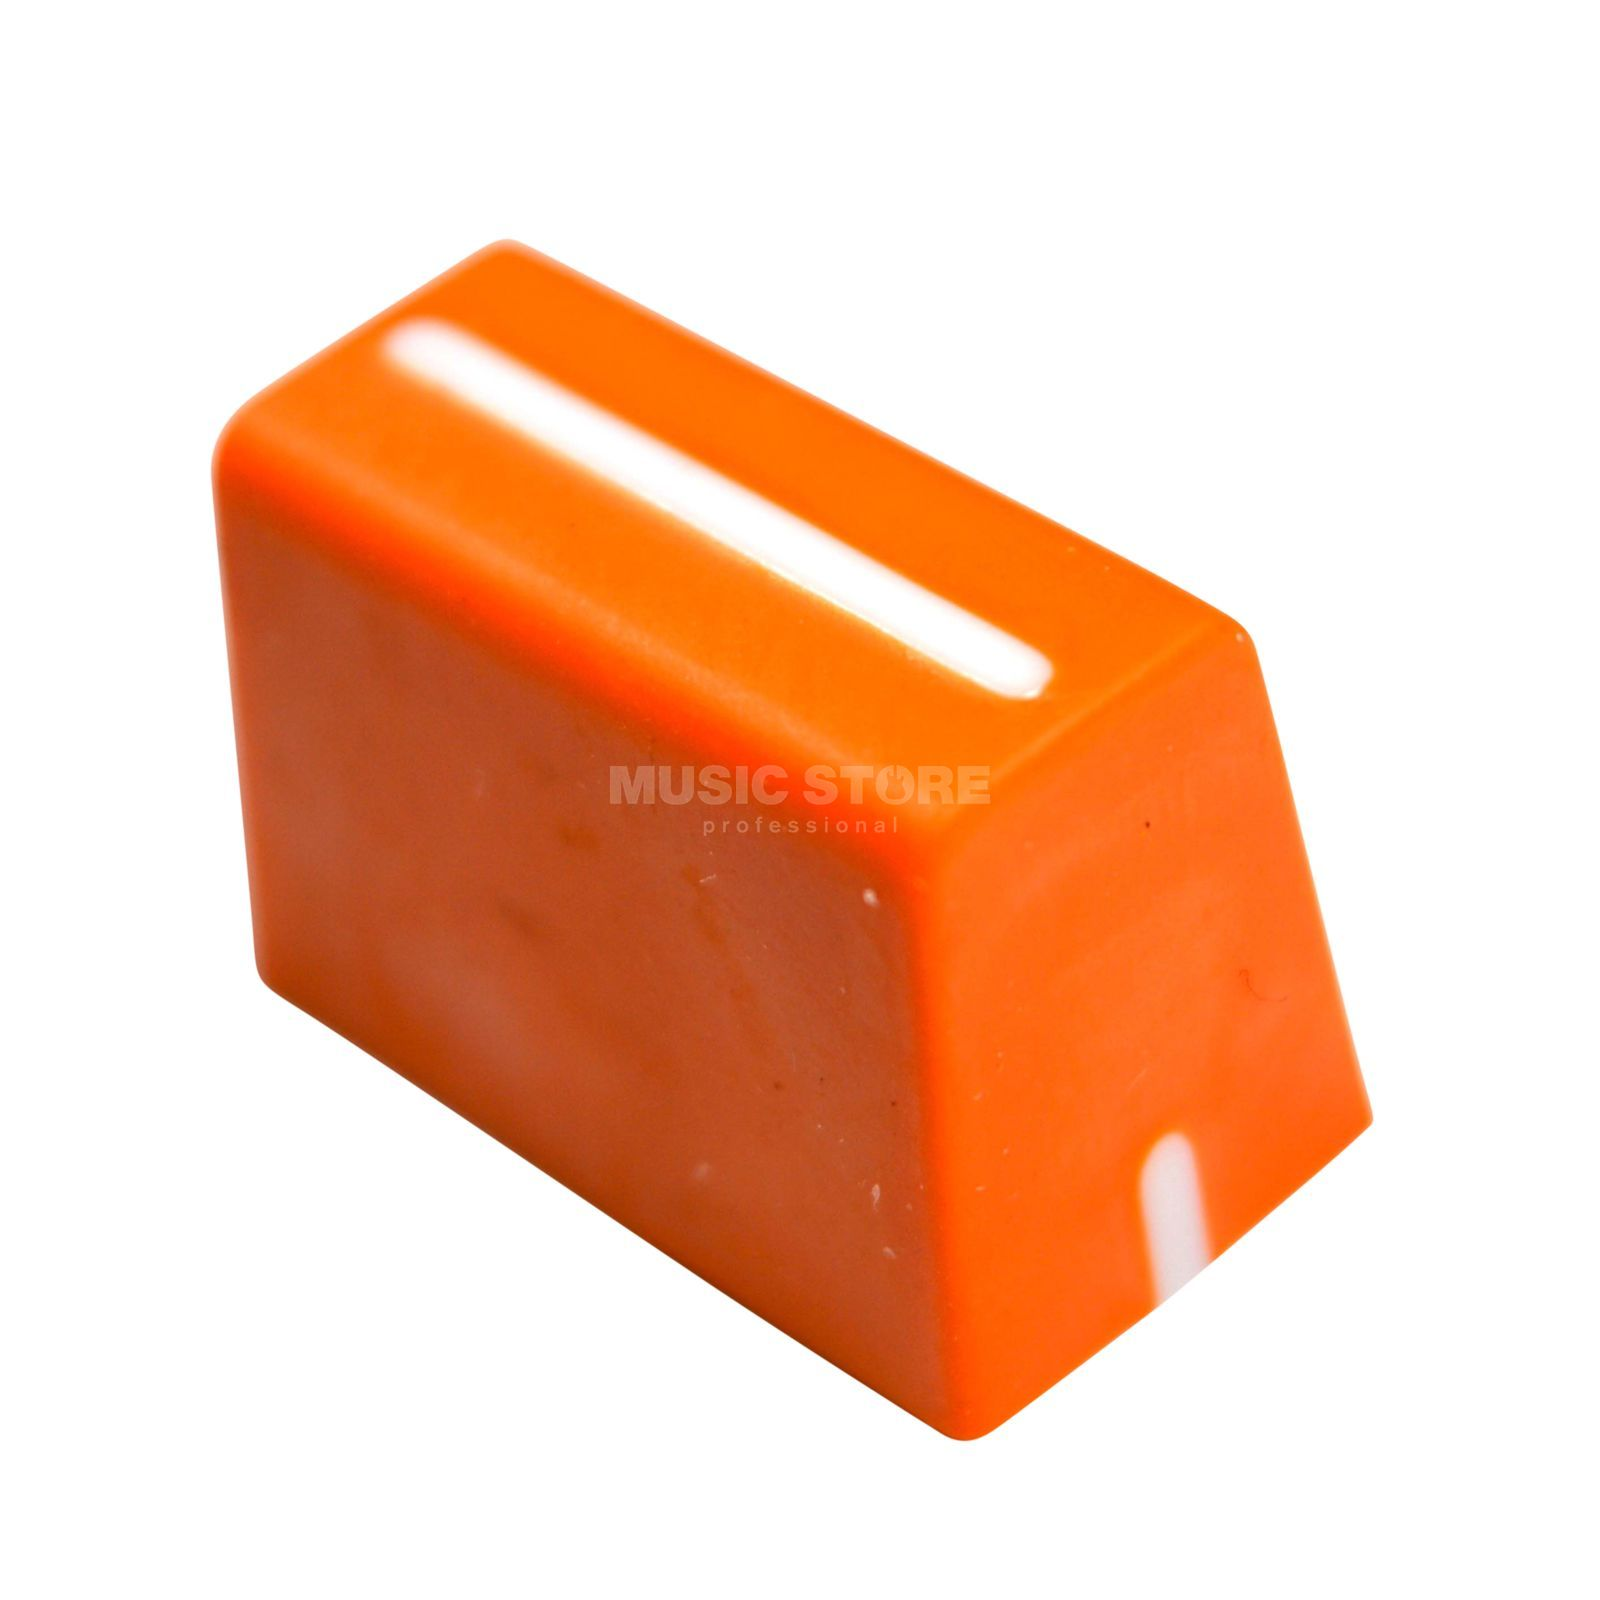 DJ TECHTOOLS Chroma Caps Fader orange  Productafbeelding